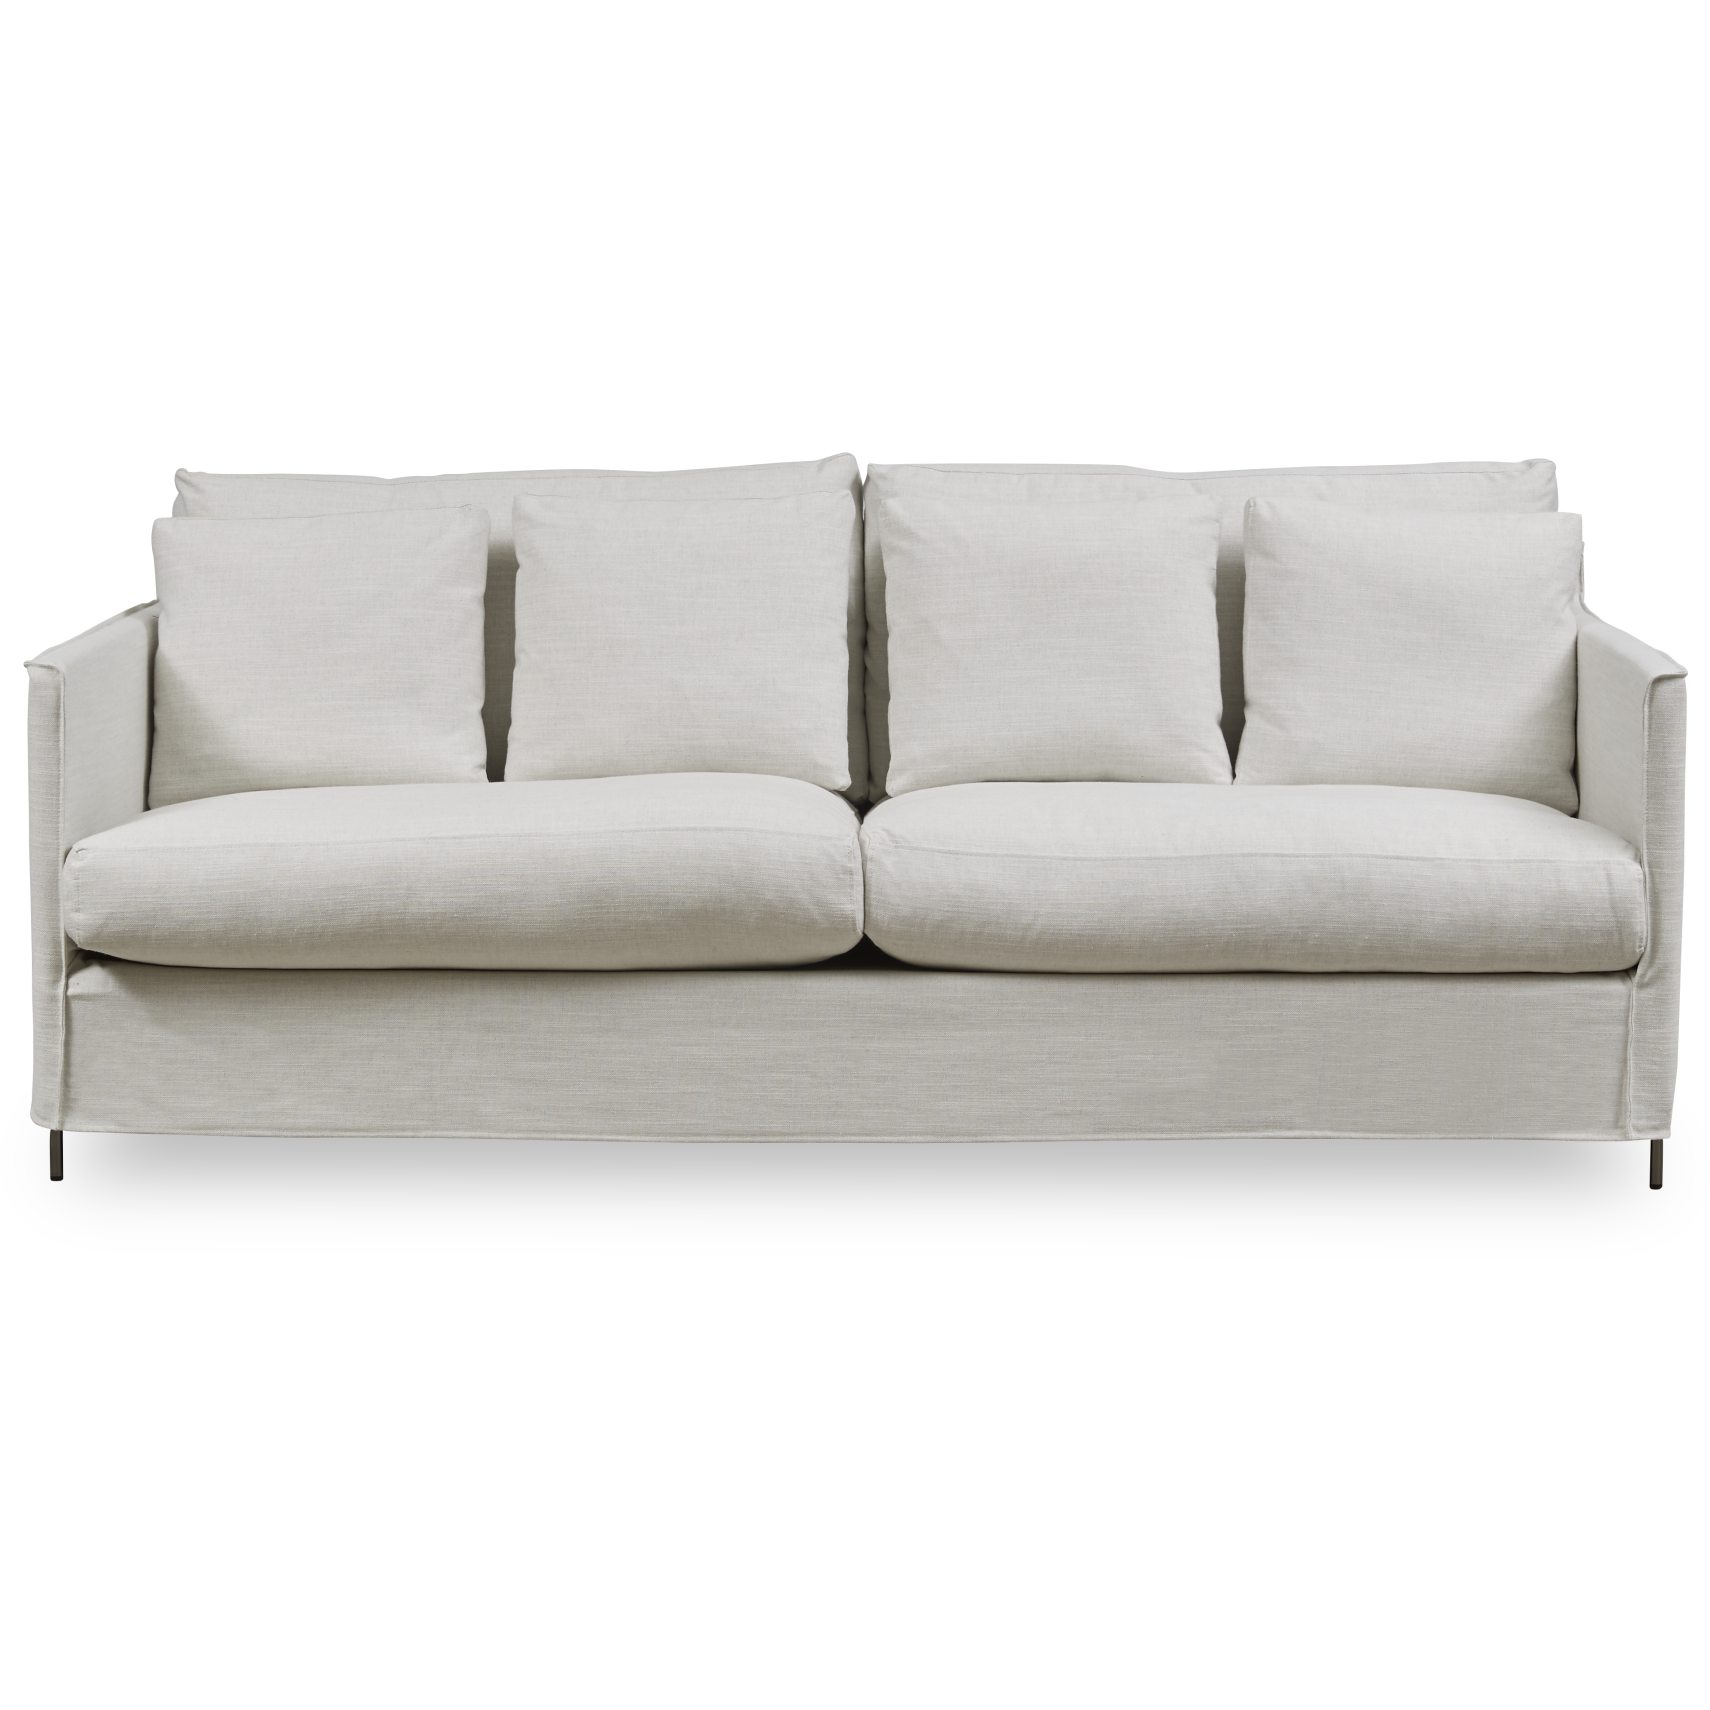 Gepetto 3 pers Sofa - Jim 1369-03 Ivory stof og ben i krom